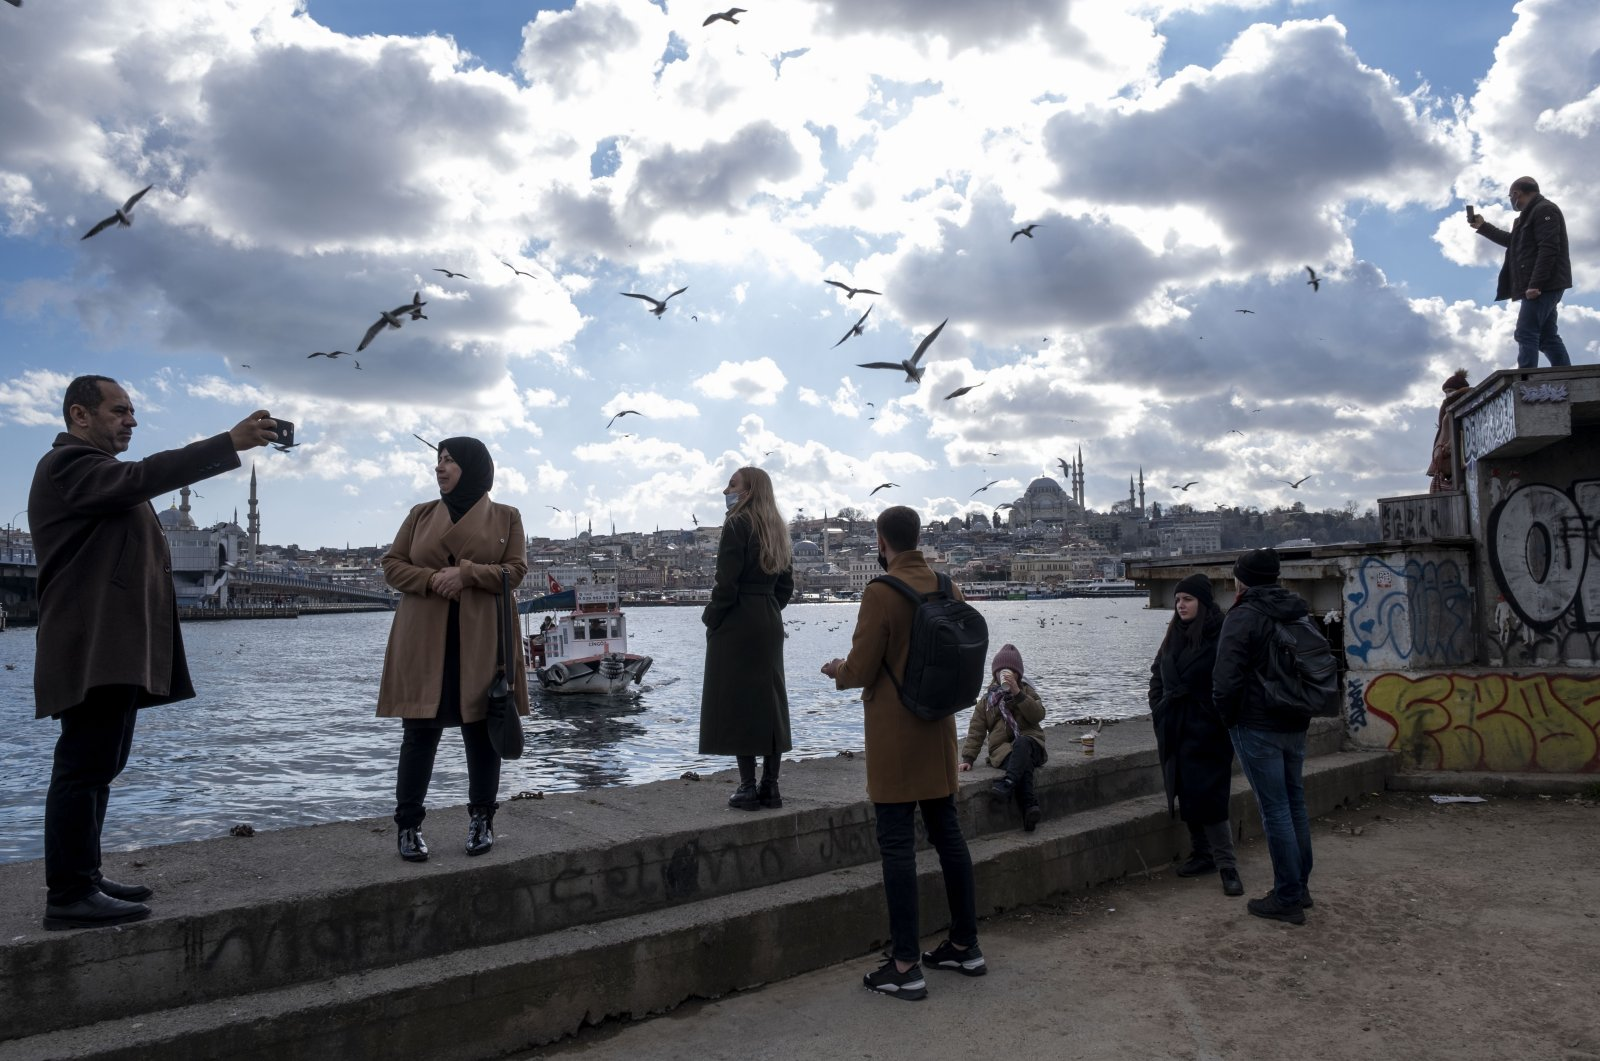 People spending time at the Karaköy seaside amid the pandemic, Istanbul, Turkey, Feb. 28, 2021. (Photo by Getty Images)